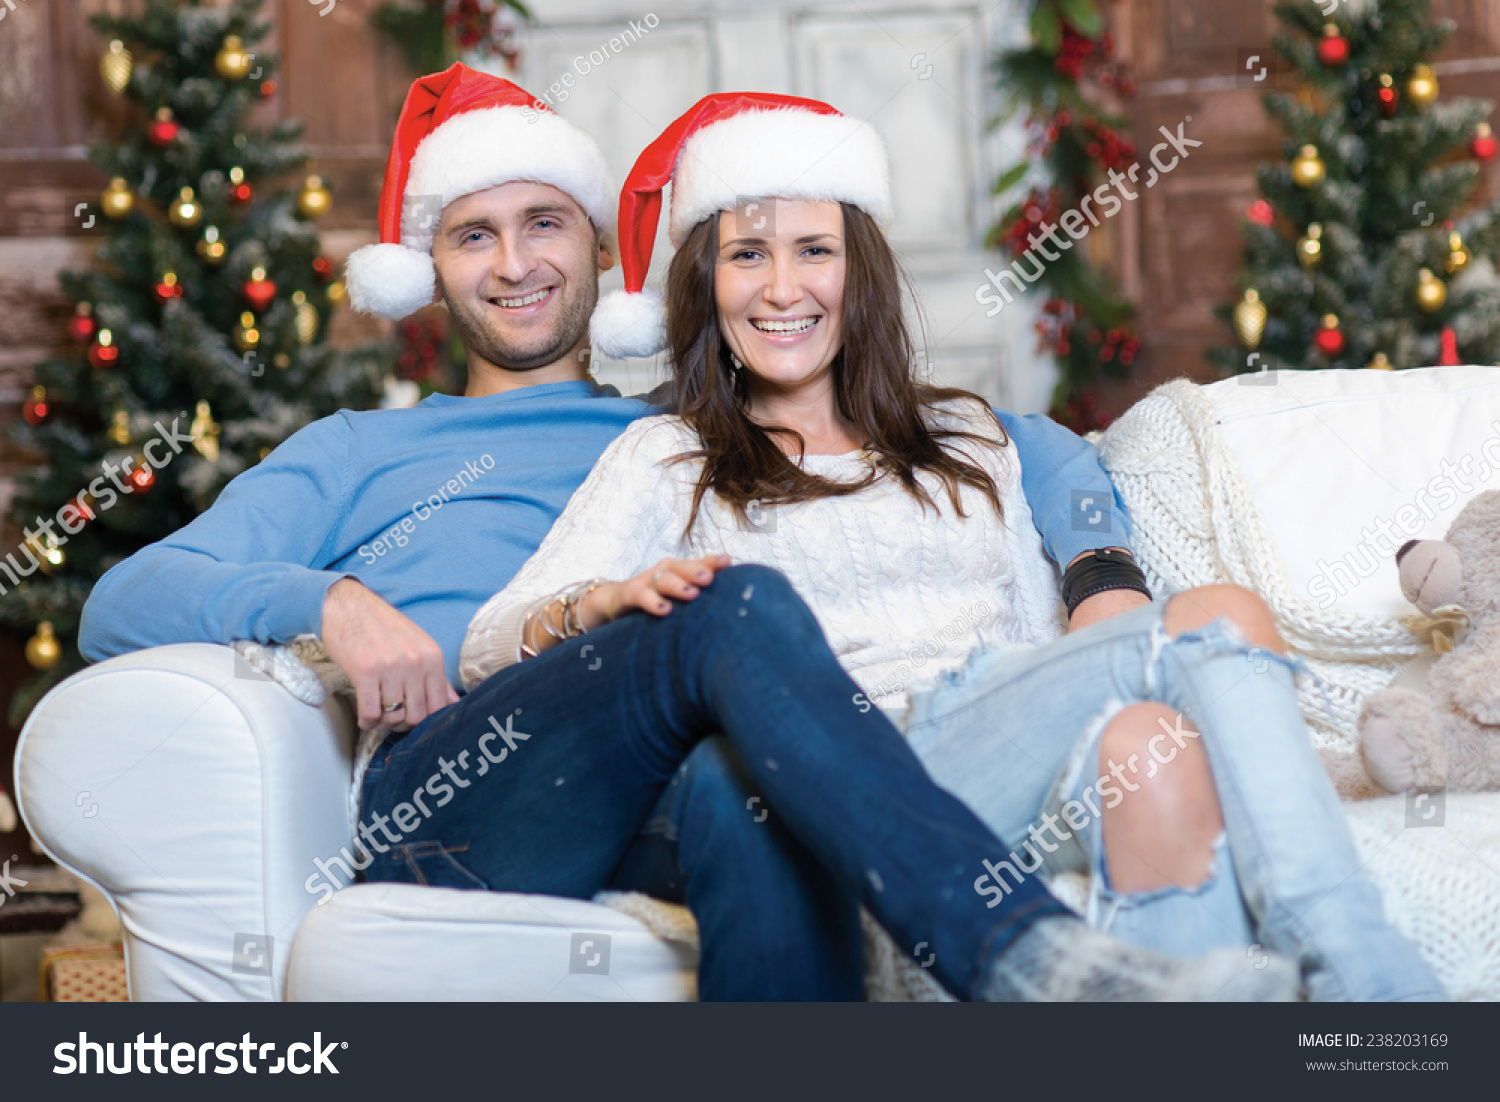 merry christmas and happy new year couple in love is sitting in festive christmas decorated